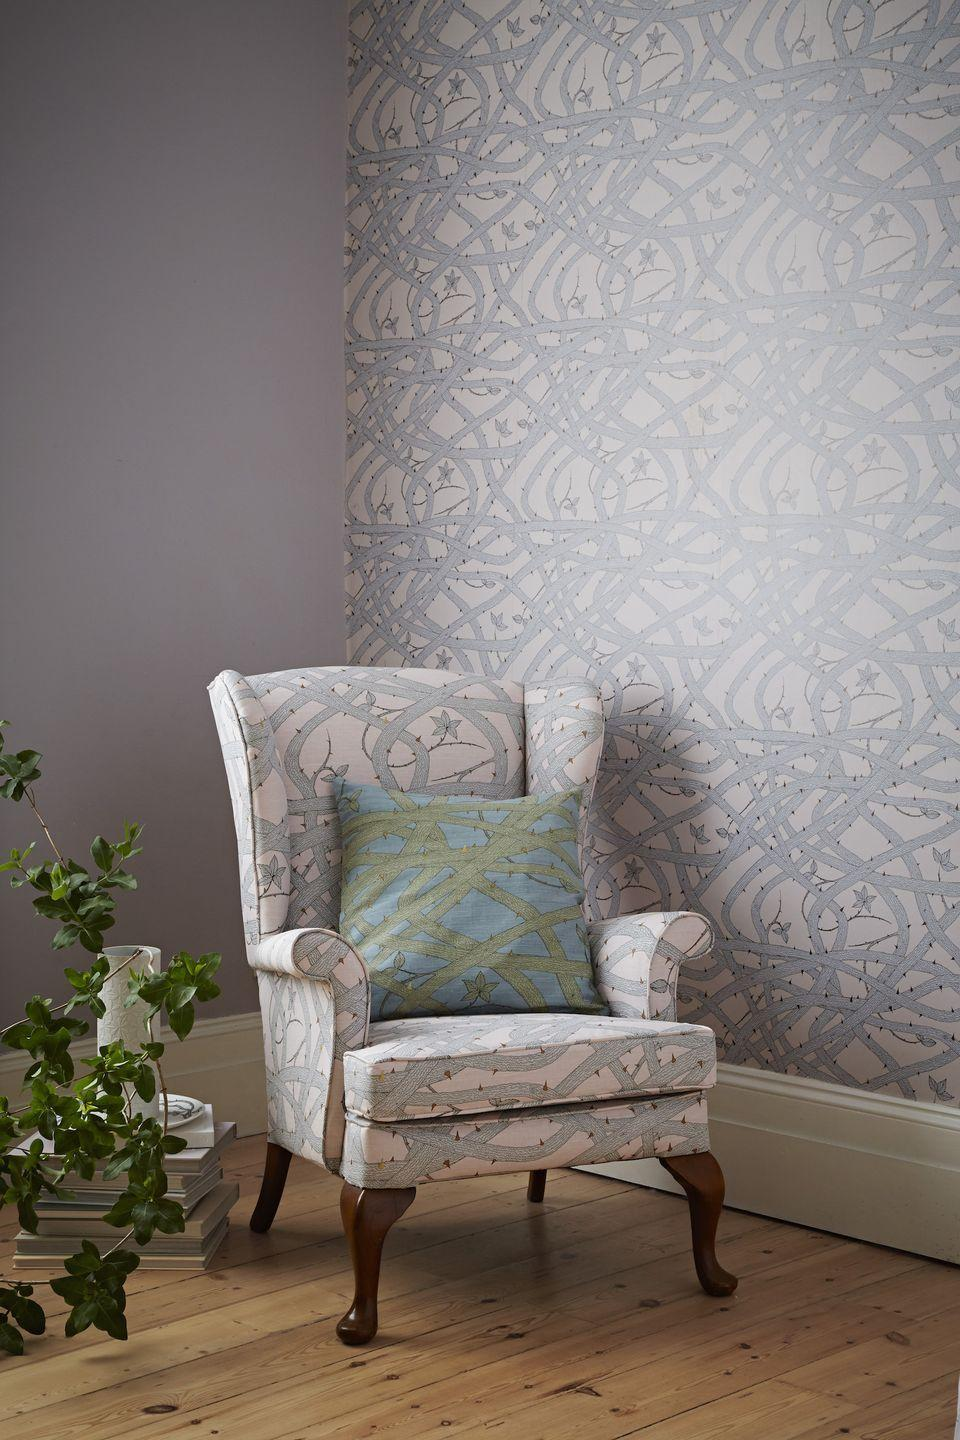 """<p>This lovely Brambleweb wallpaper is used as a feature on one wall with a complementary paint shade on the other walls. To take the scheme one stage further, why not use fabric in the same design to cover an armchair?</p><p>'Living rooms are the obvious place for wallpaper, you can make a statement or add atmosphere. Paper the entire room and ceilings to envelop the space, Brambleweb wallpaper is perfect for this, the tangled vines appear to have been growing up the walls for years, like a modern day sleeping beauty,' says <a href=""""https://www.abigailedwards.com/"""" rel=""""nofollow noopener"""" target=""""_blank"""" data-ylk=""""slk:Abigail Edwards"""" class=""""link rapid-noclick-resp"""">Abigail Edwards</a>, Wallpaper, Fabric and Accessory Designer.</p><p>Top Tip: You could even add a cushion in the same fabric but a contrasting shade for a complete look.<br></p><p>Pictured: Brambleweb wallpaper in Nude, <a href=""""https://www.abigailedwards.com/shop/brambleweb-wallpaper-nude"""" rel=""""nofollow noopener"""" target=""""_blank"""" data-ylk=""""slk:Abigail Edwards"""" class=""""link rapid-noclick-resp"""">Abigail Edwards</a></p>"""